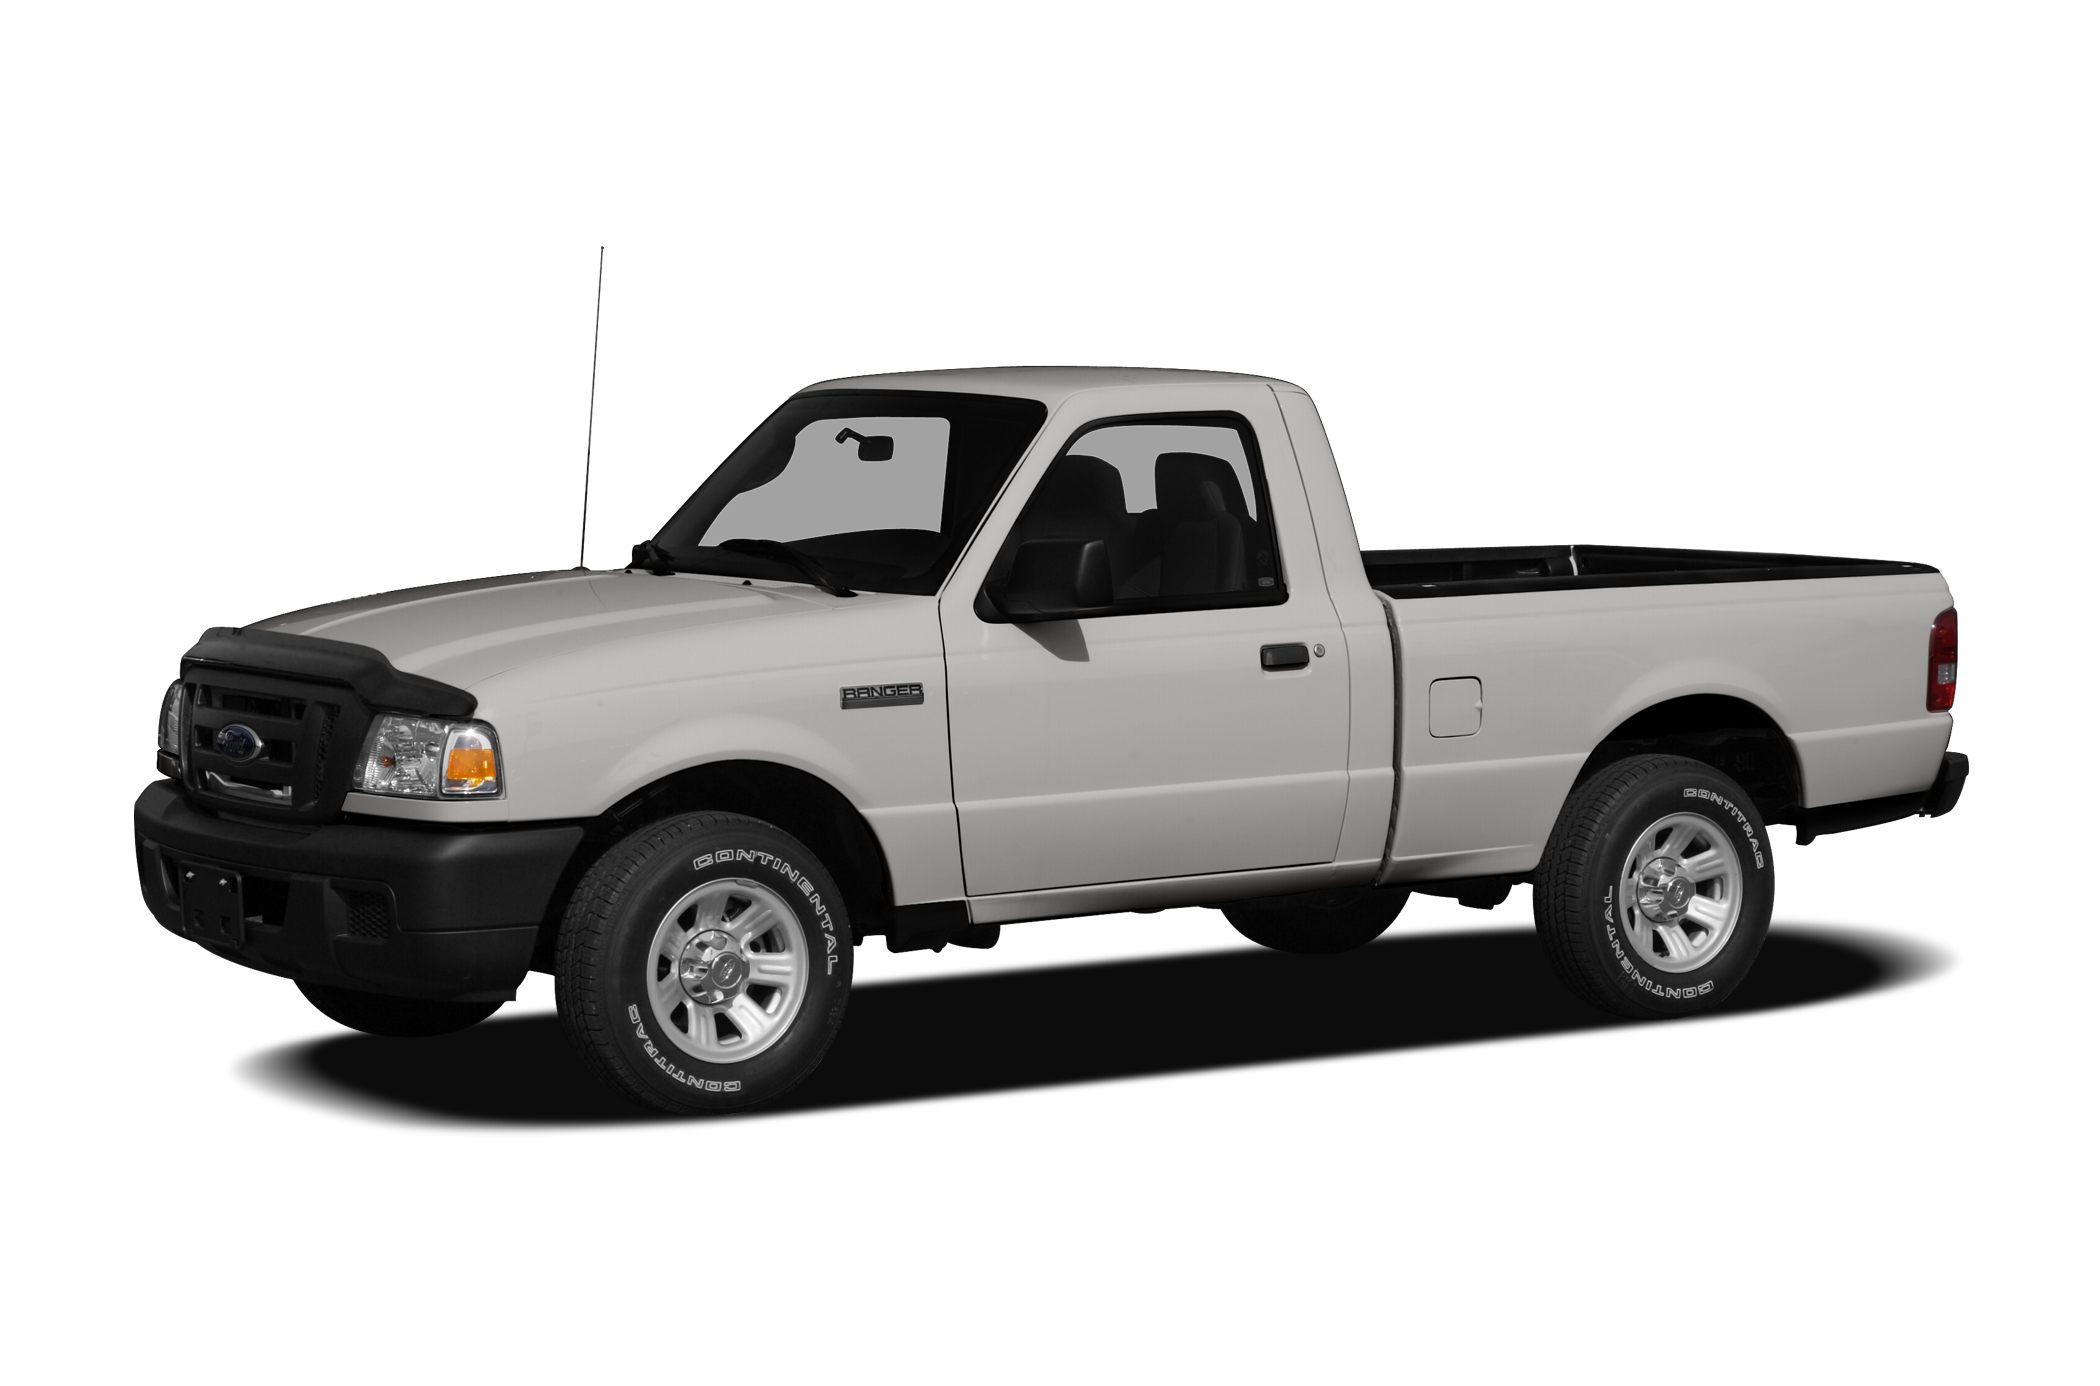 2006 Ford Ranger STX Certfied by CARFAX - NO ACCIDENTS and ONE OWNER Want to save some money